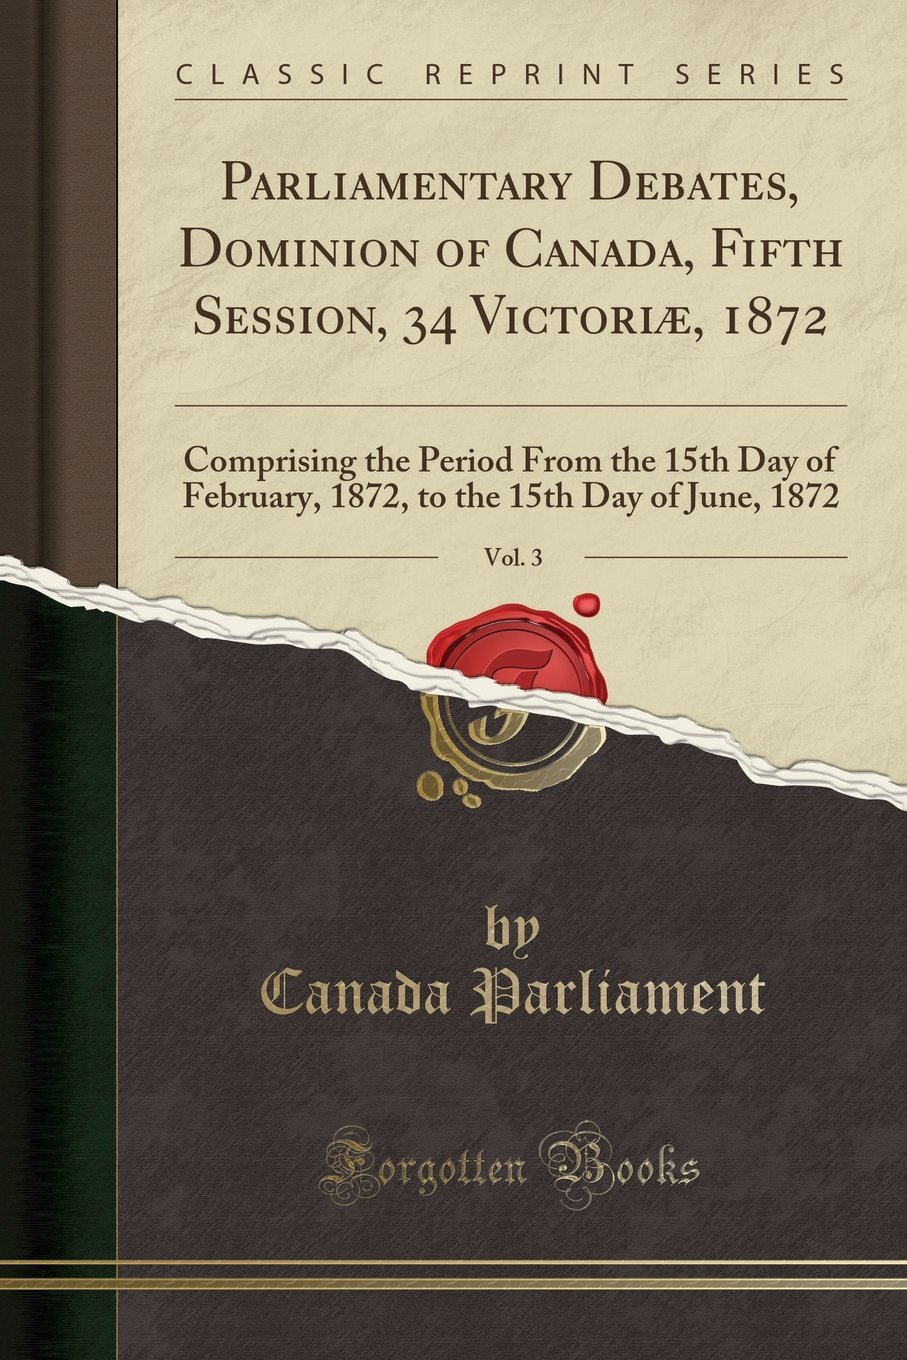 Parliamentary Debates, Dominion of Canada, Fifth Session, 34 Victoriæ, 1872, Vol. 3: Comprising the Period From the 15th Day of February, 1872, to the 15th Day of June, 1872 (Classic Reprint) ebook